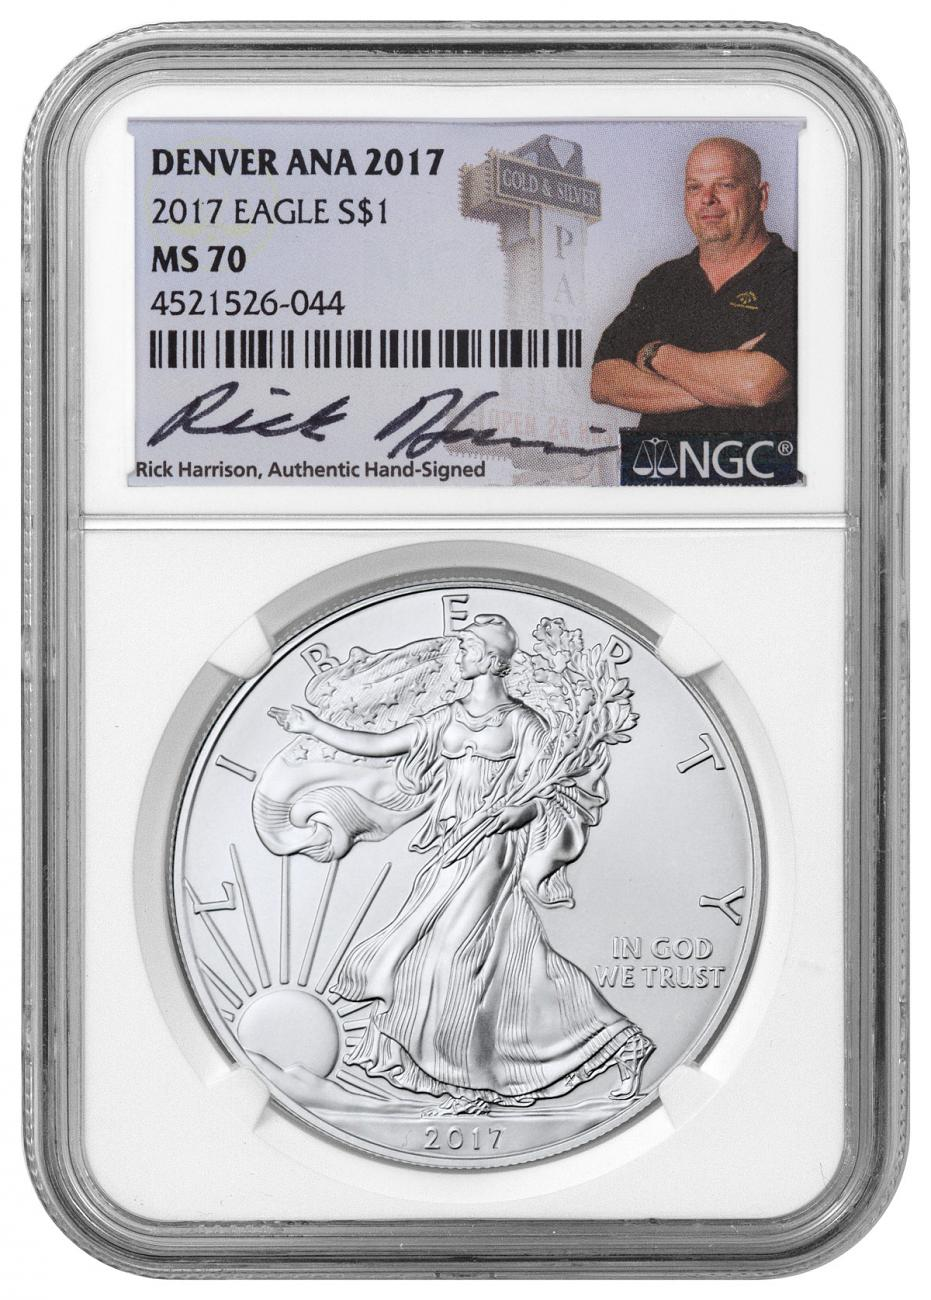 2017 American Silver Eagle Denver ANA 2017 NGC MS70 Exclusive Rick Harrison Signed Label